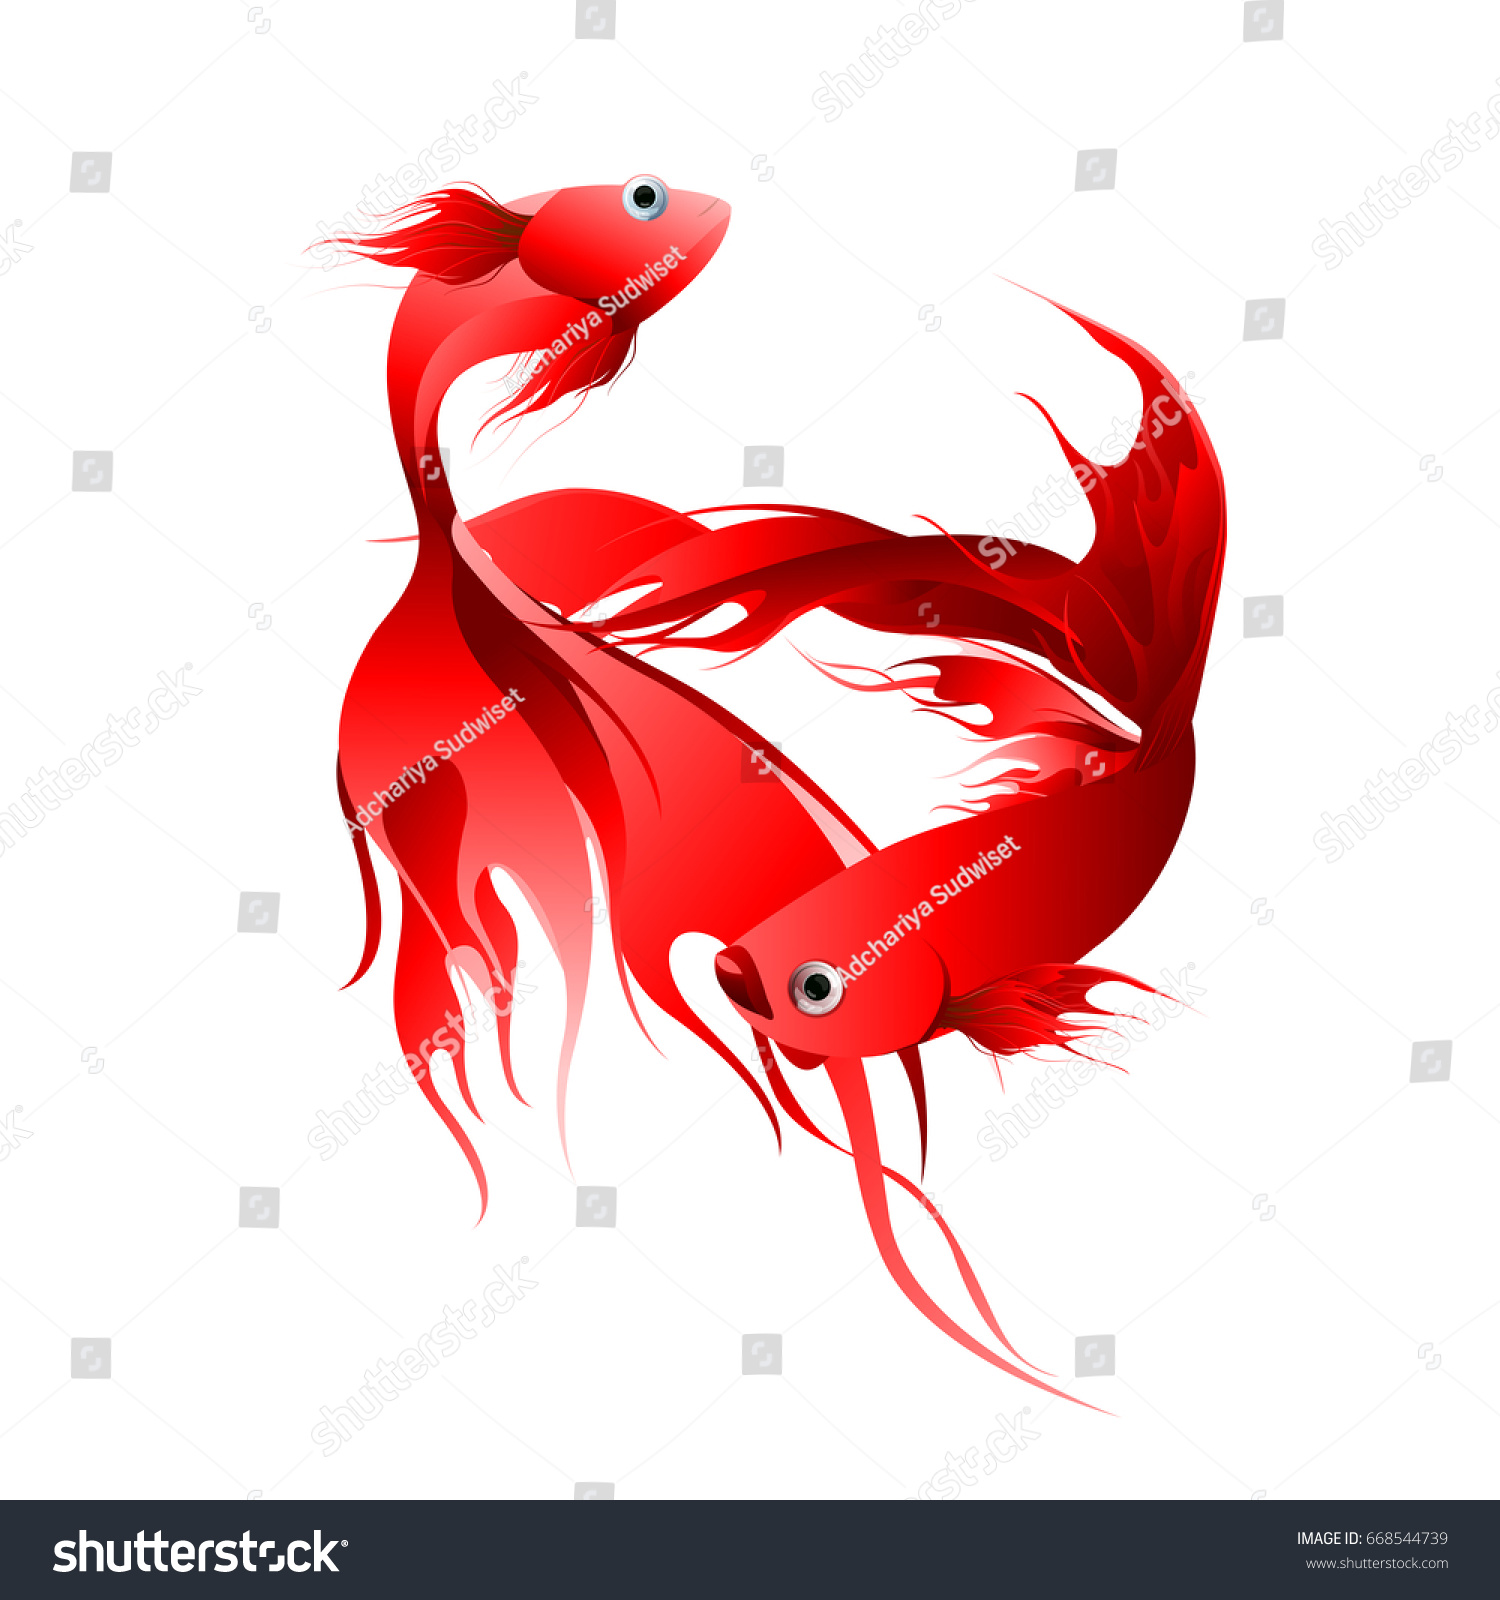 Fish Graphic Design Red Color Abstract Stock Vector 668544739 ...